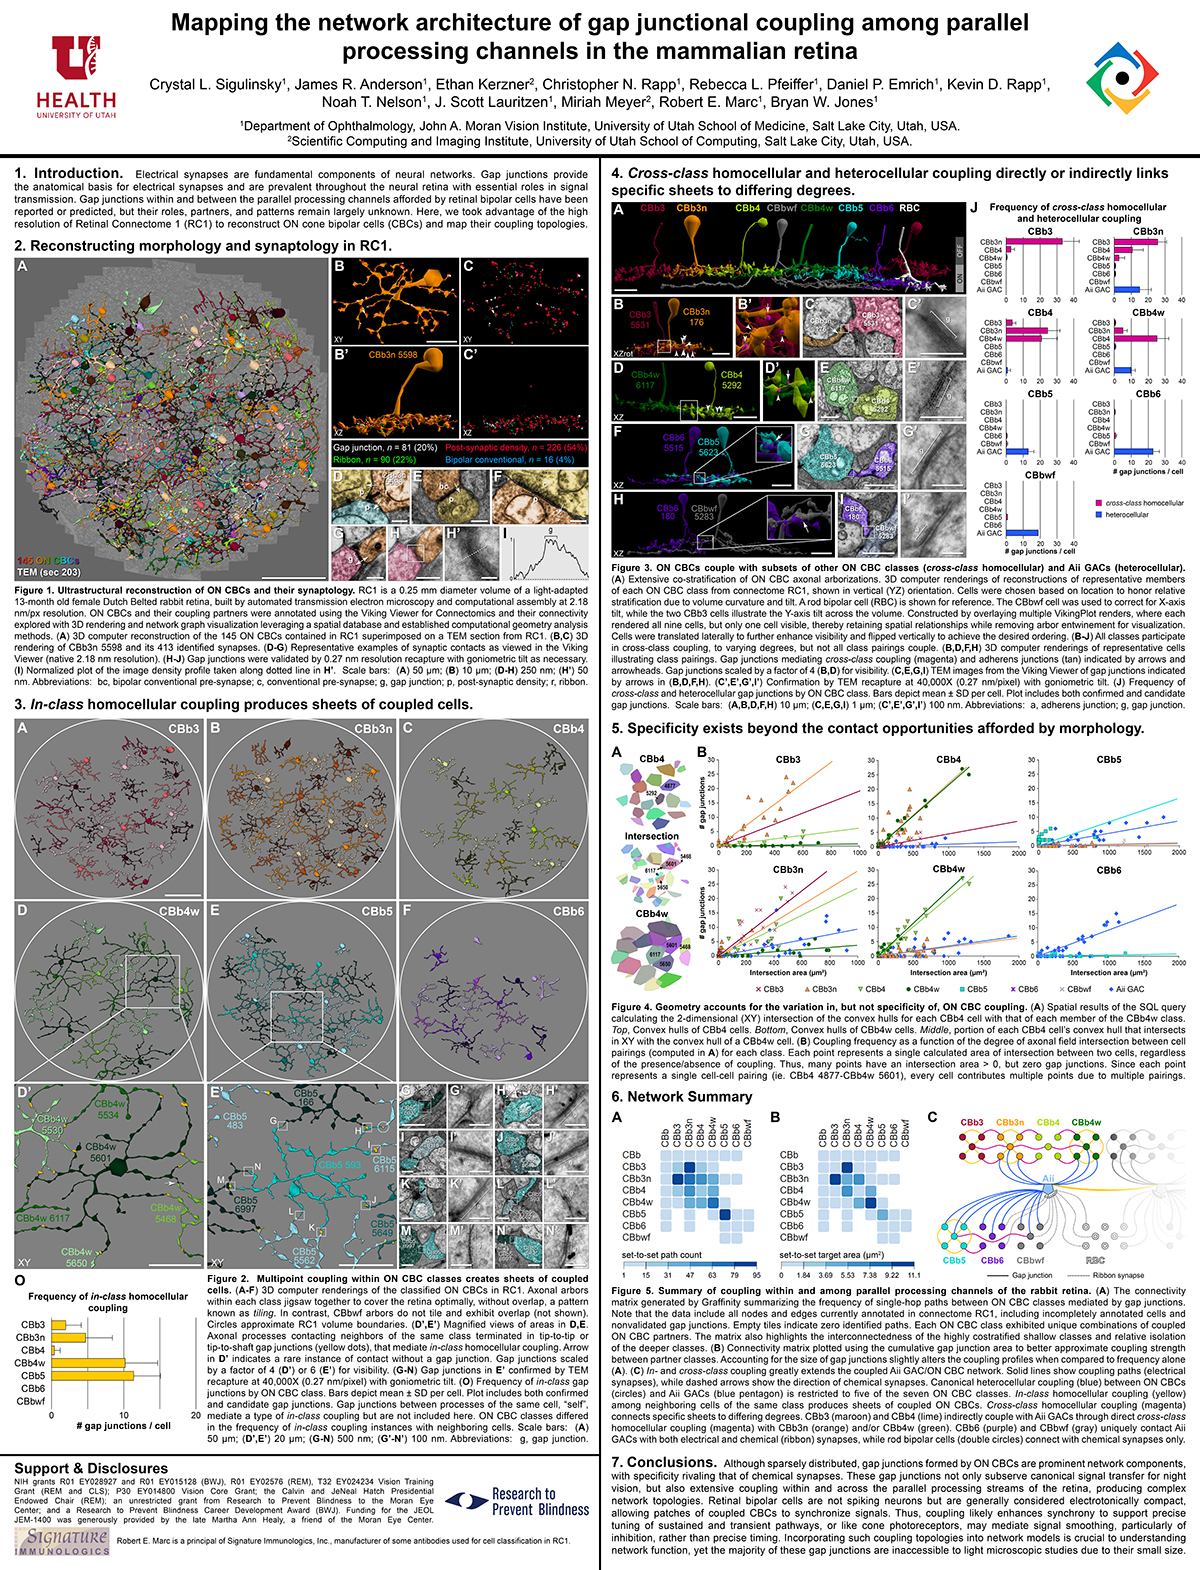 Mapping The Network Architecture of Gap Junctional Coupling